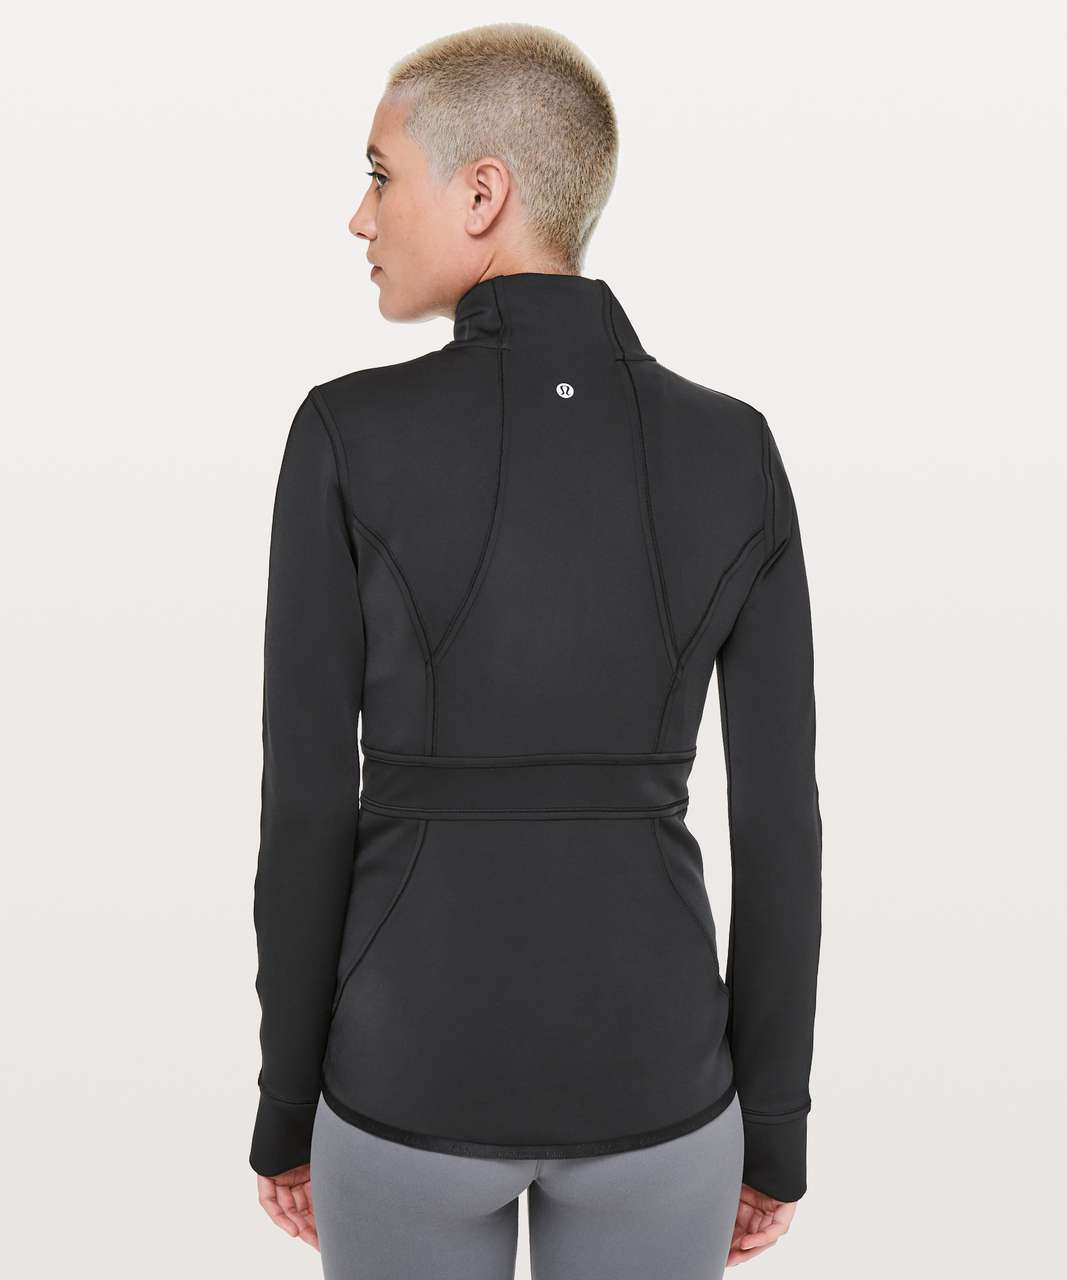 Lululemon In Profile Jacket - Black